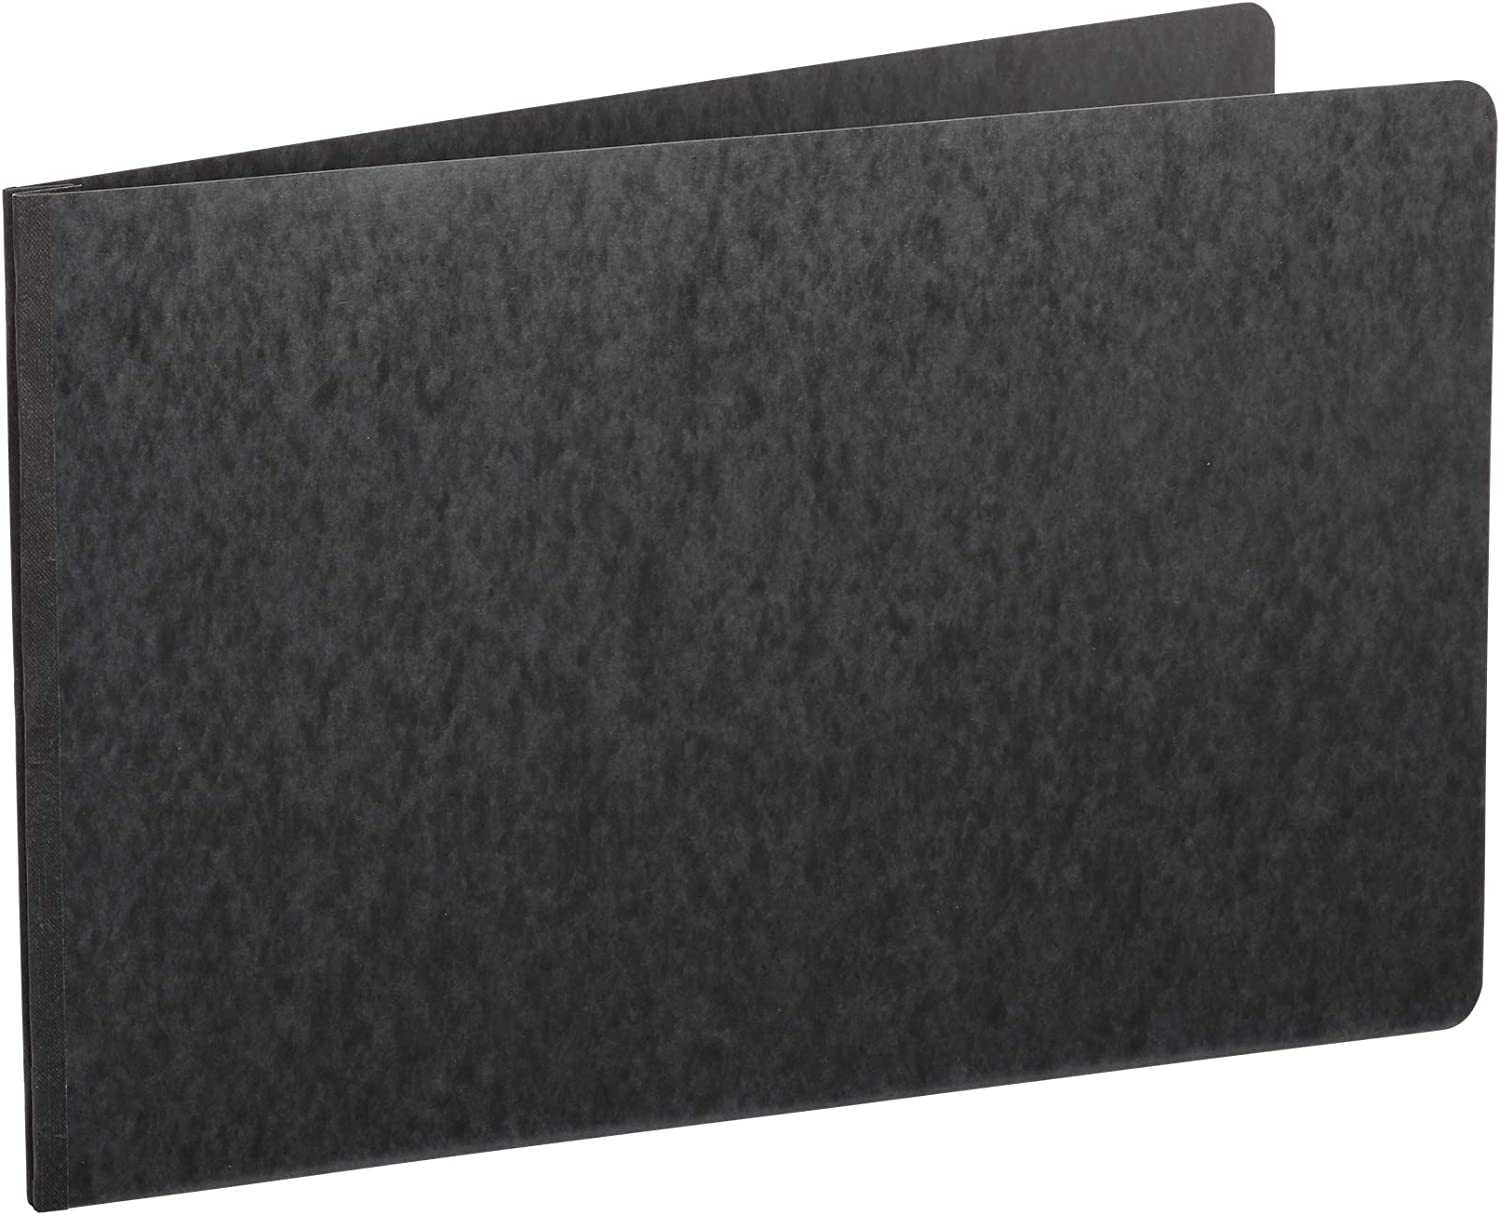 Prong Clip 3 Pack 3 Inch Capacity Black 11 x 17 Inches Oxford Pressboard Report Cover 13206